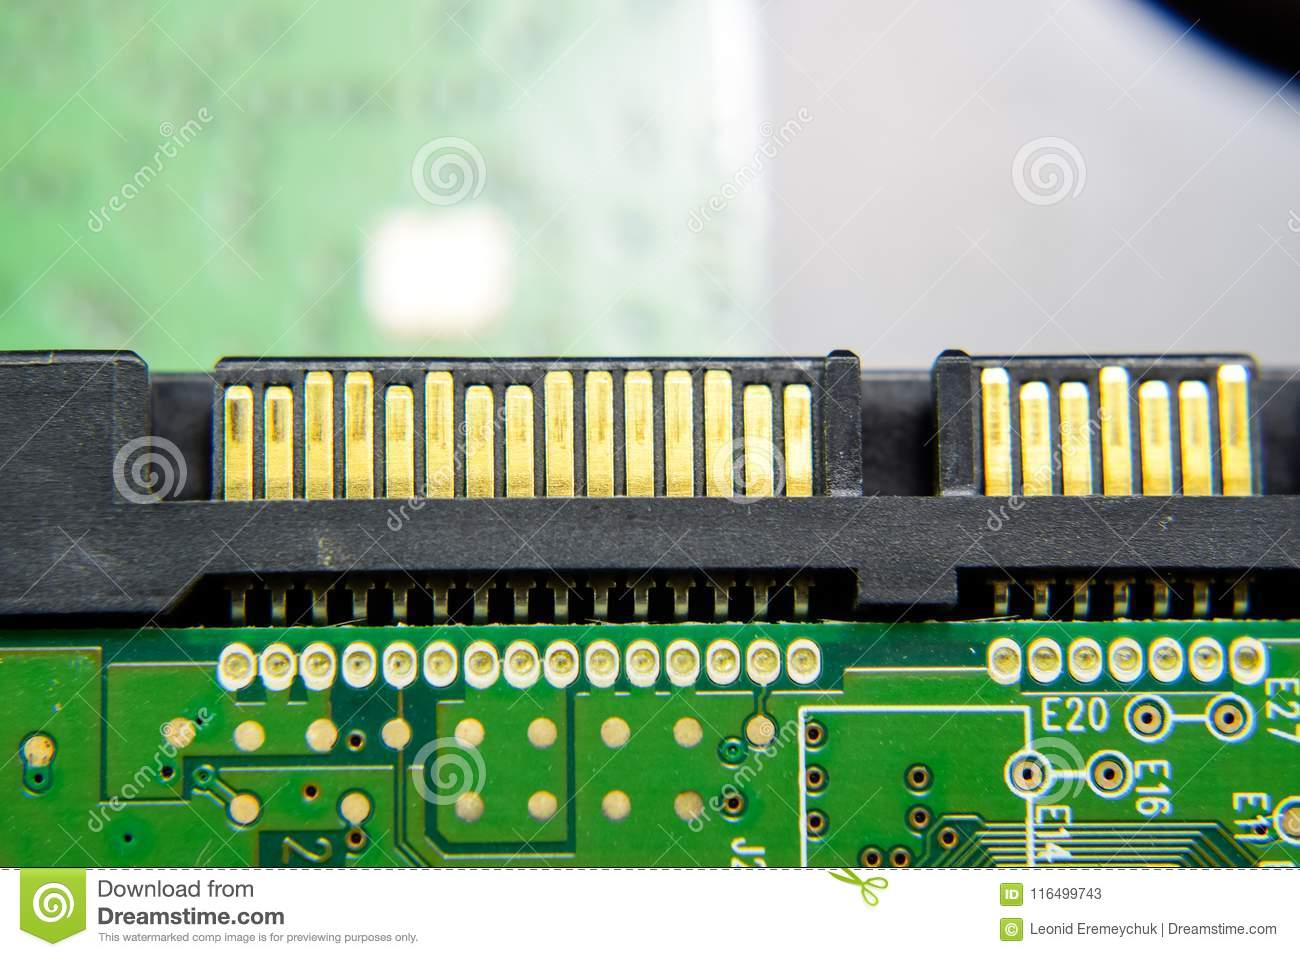 Sata hard drive connector Electronic board with electrical components. Electronics of computer equipment